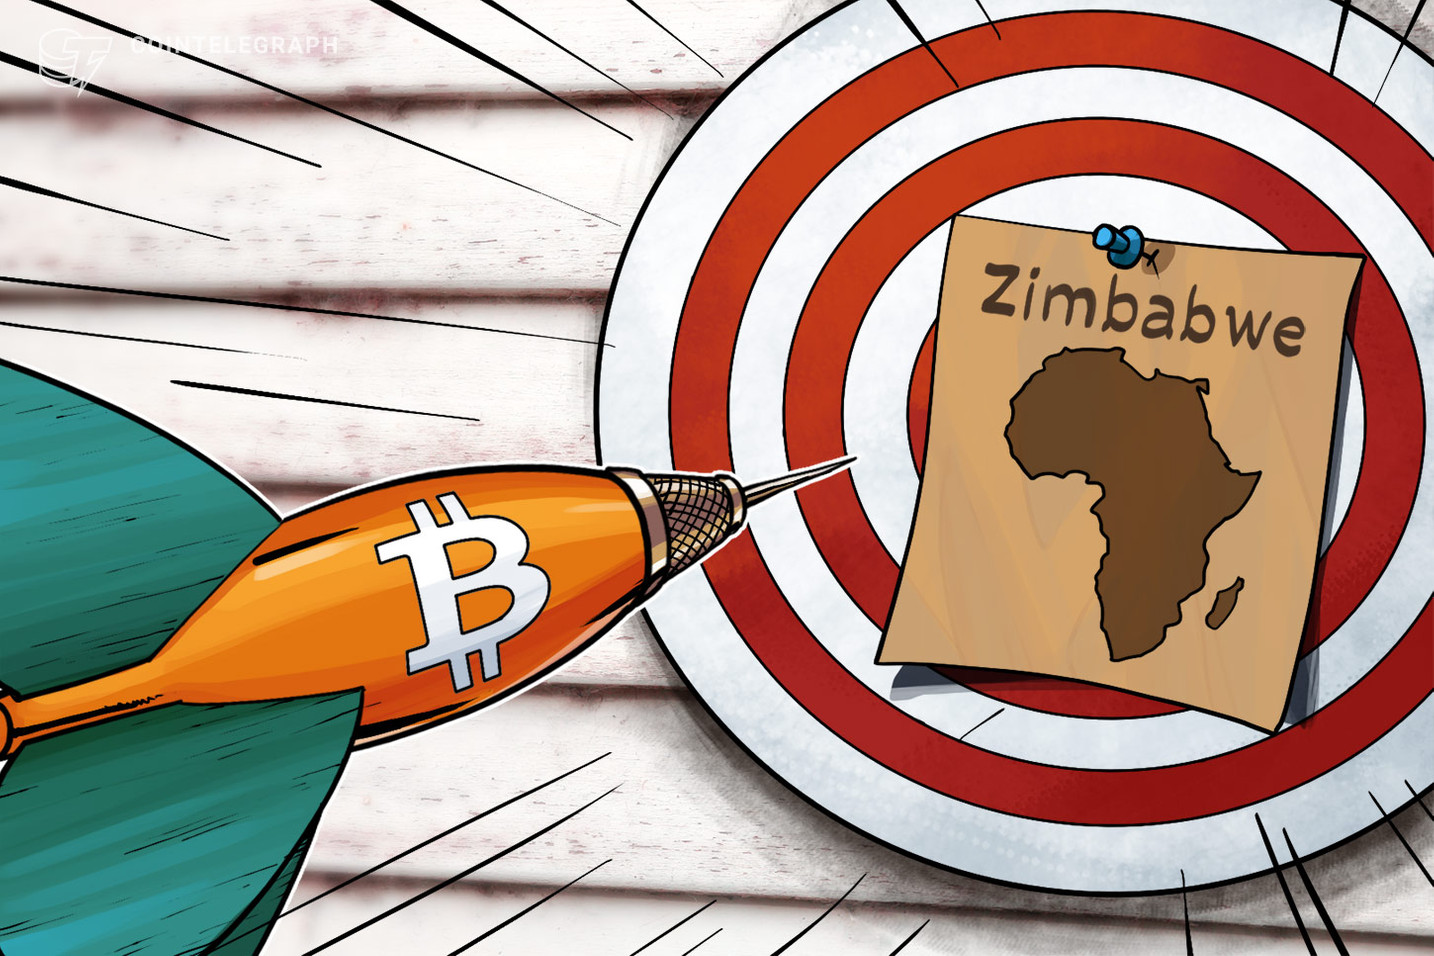 BTC Peer-to-Peer Trading Rises Amid Ban on USD in Zimbabwe: Report